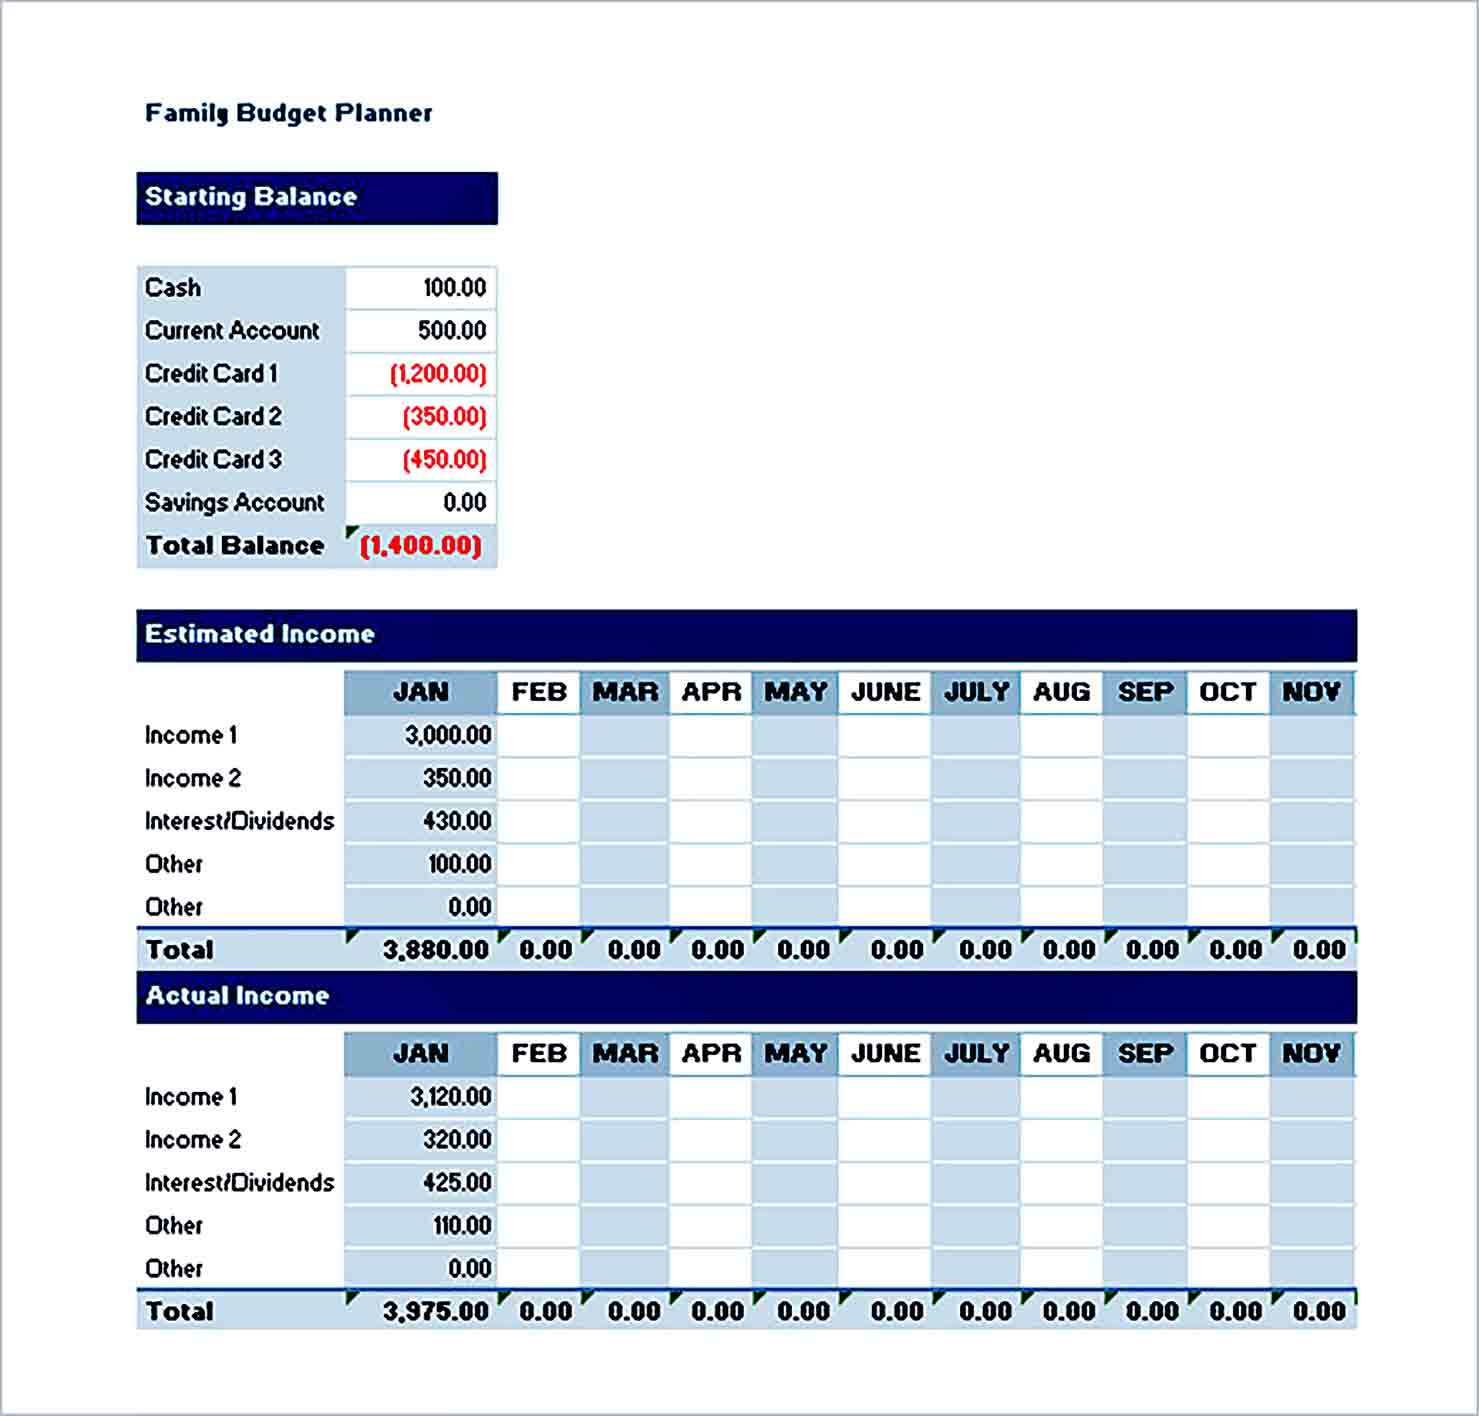 Sample Family Budget Planner in Excel Format